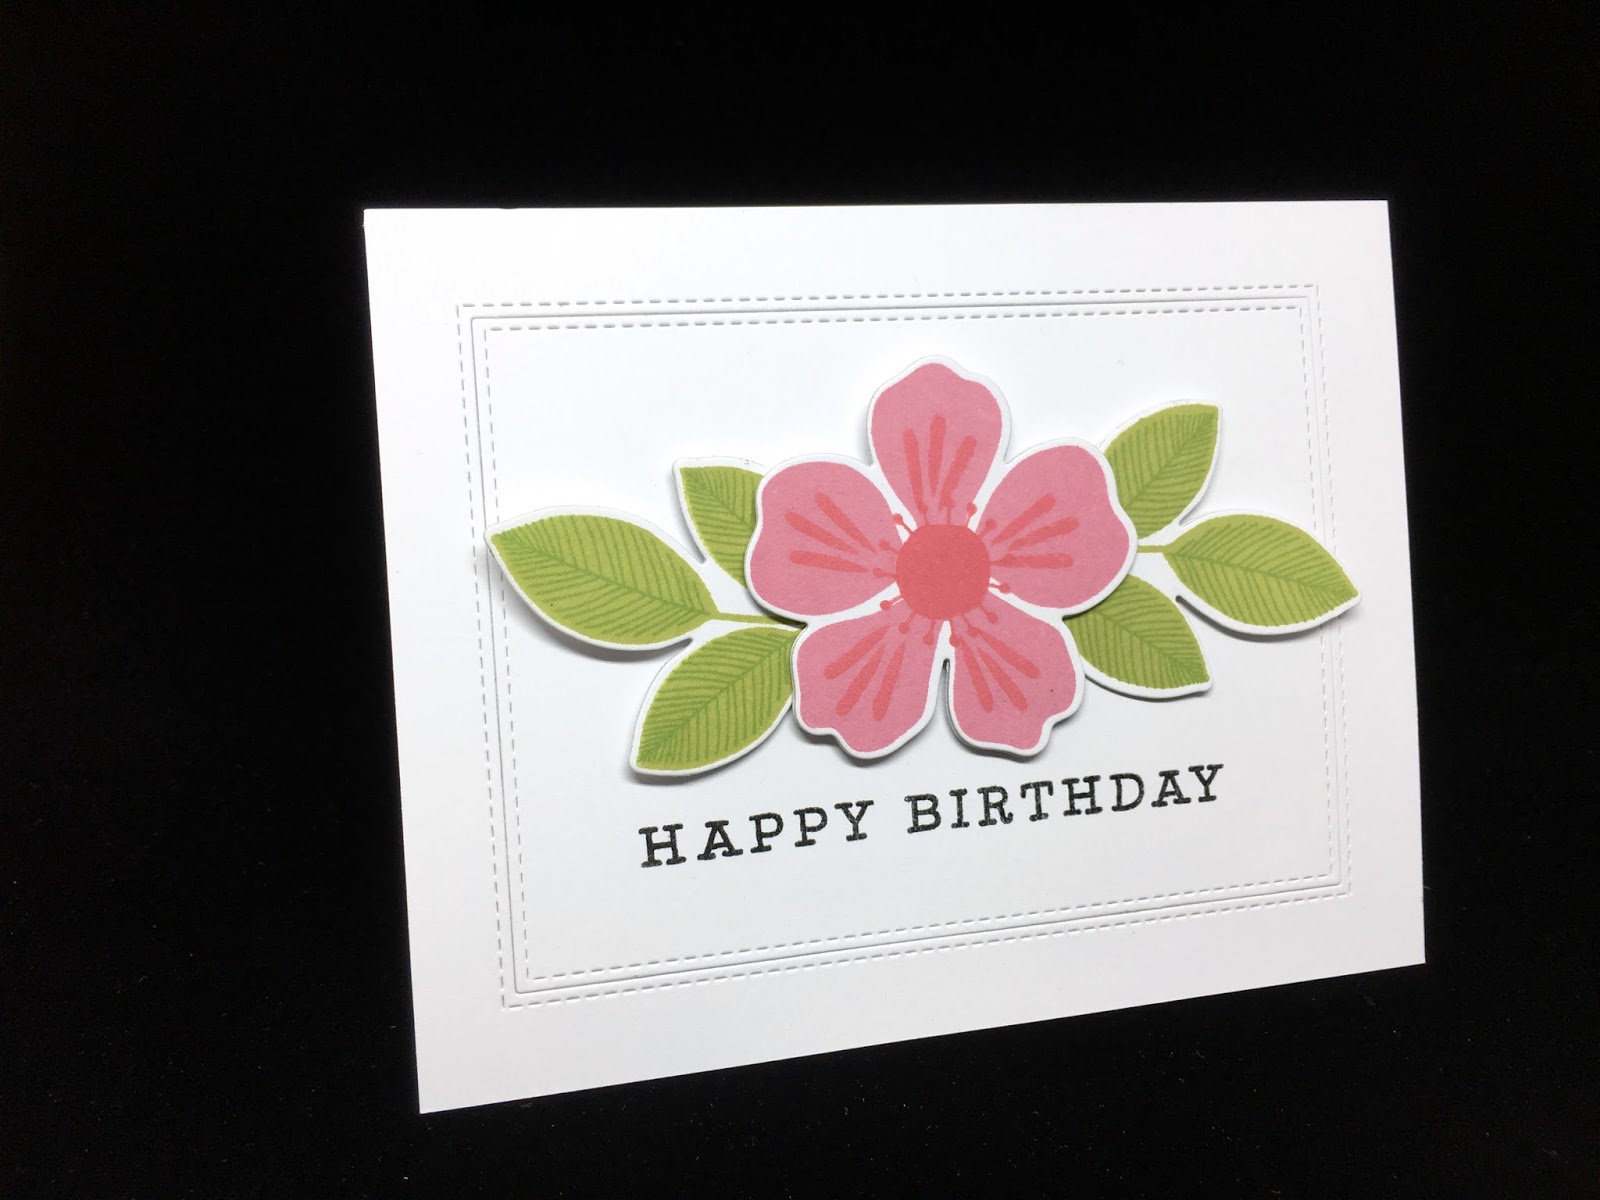 Im in haven flashy florals birthday flower flashy florals birthday flower izmirmasajfo